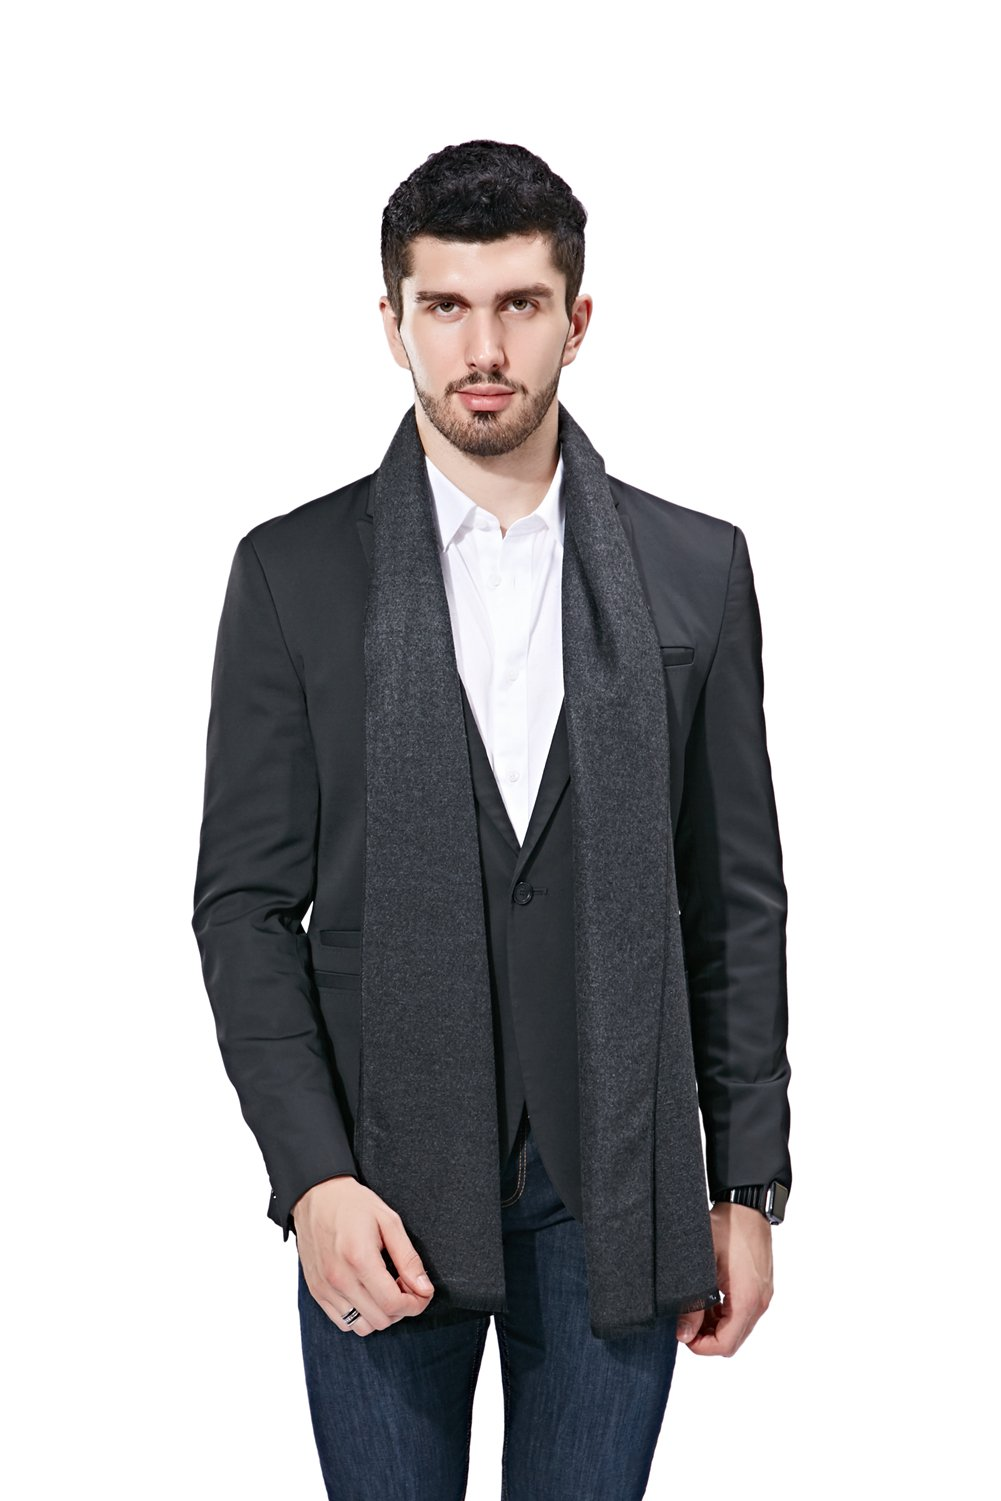 FULLRON Men Winter Scarf Long Cashmere Scarves, Grey Cotton Scarf for Men by FULLRON (Image #2)